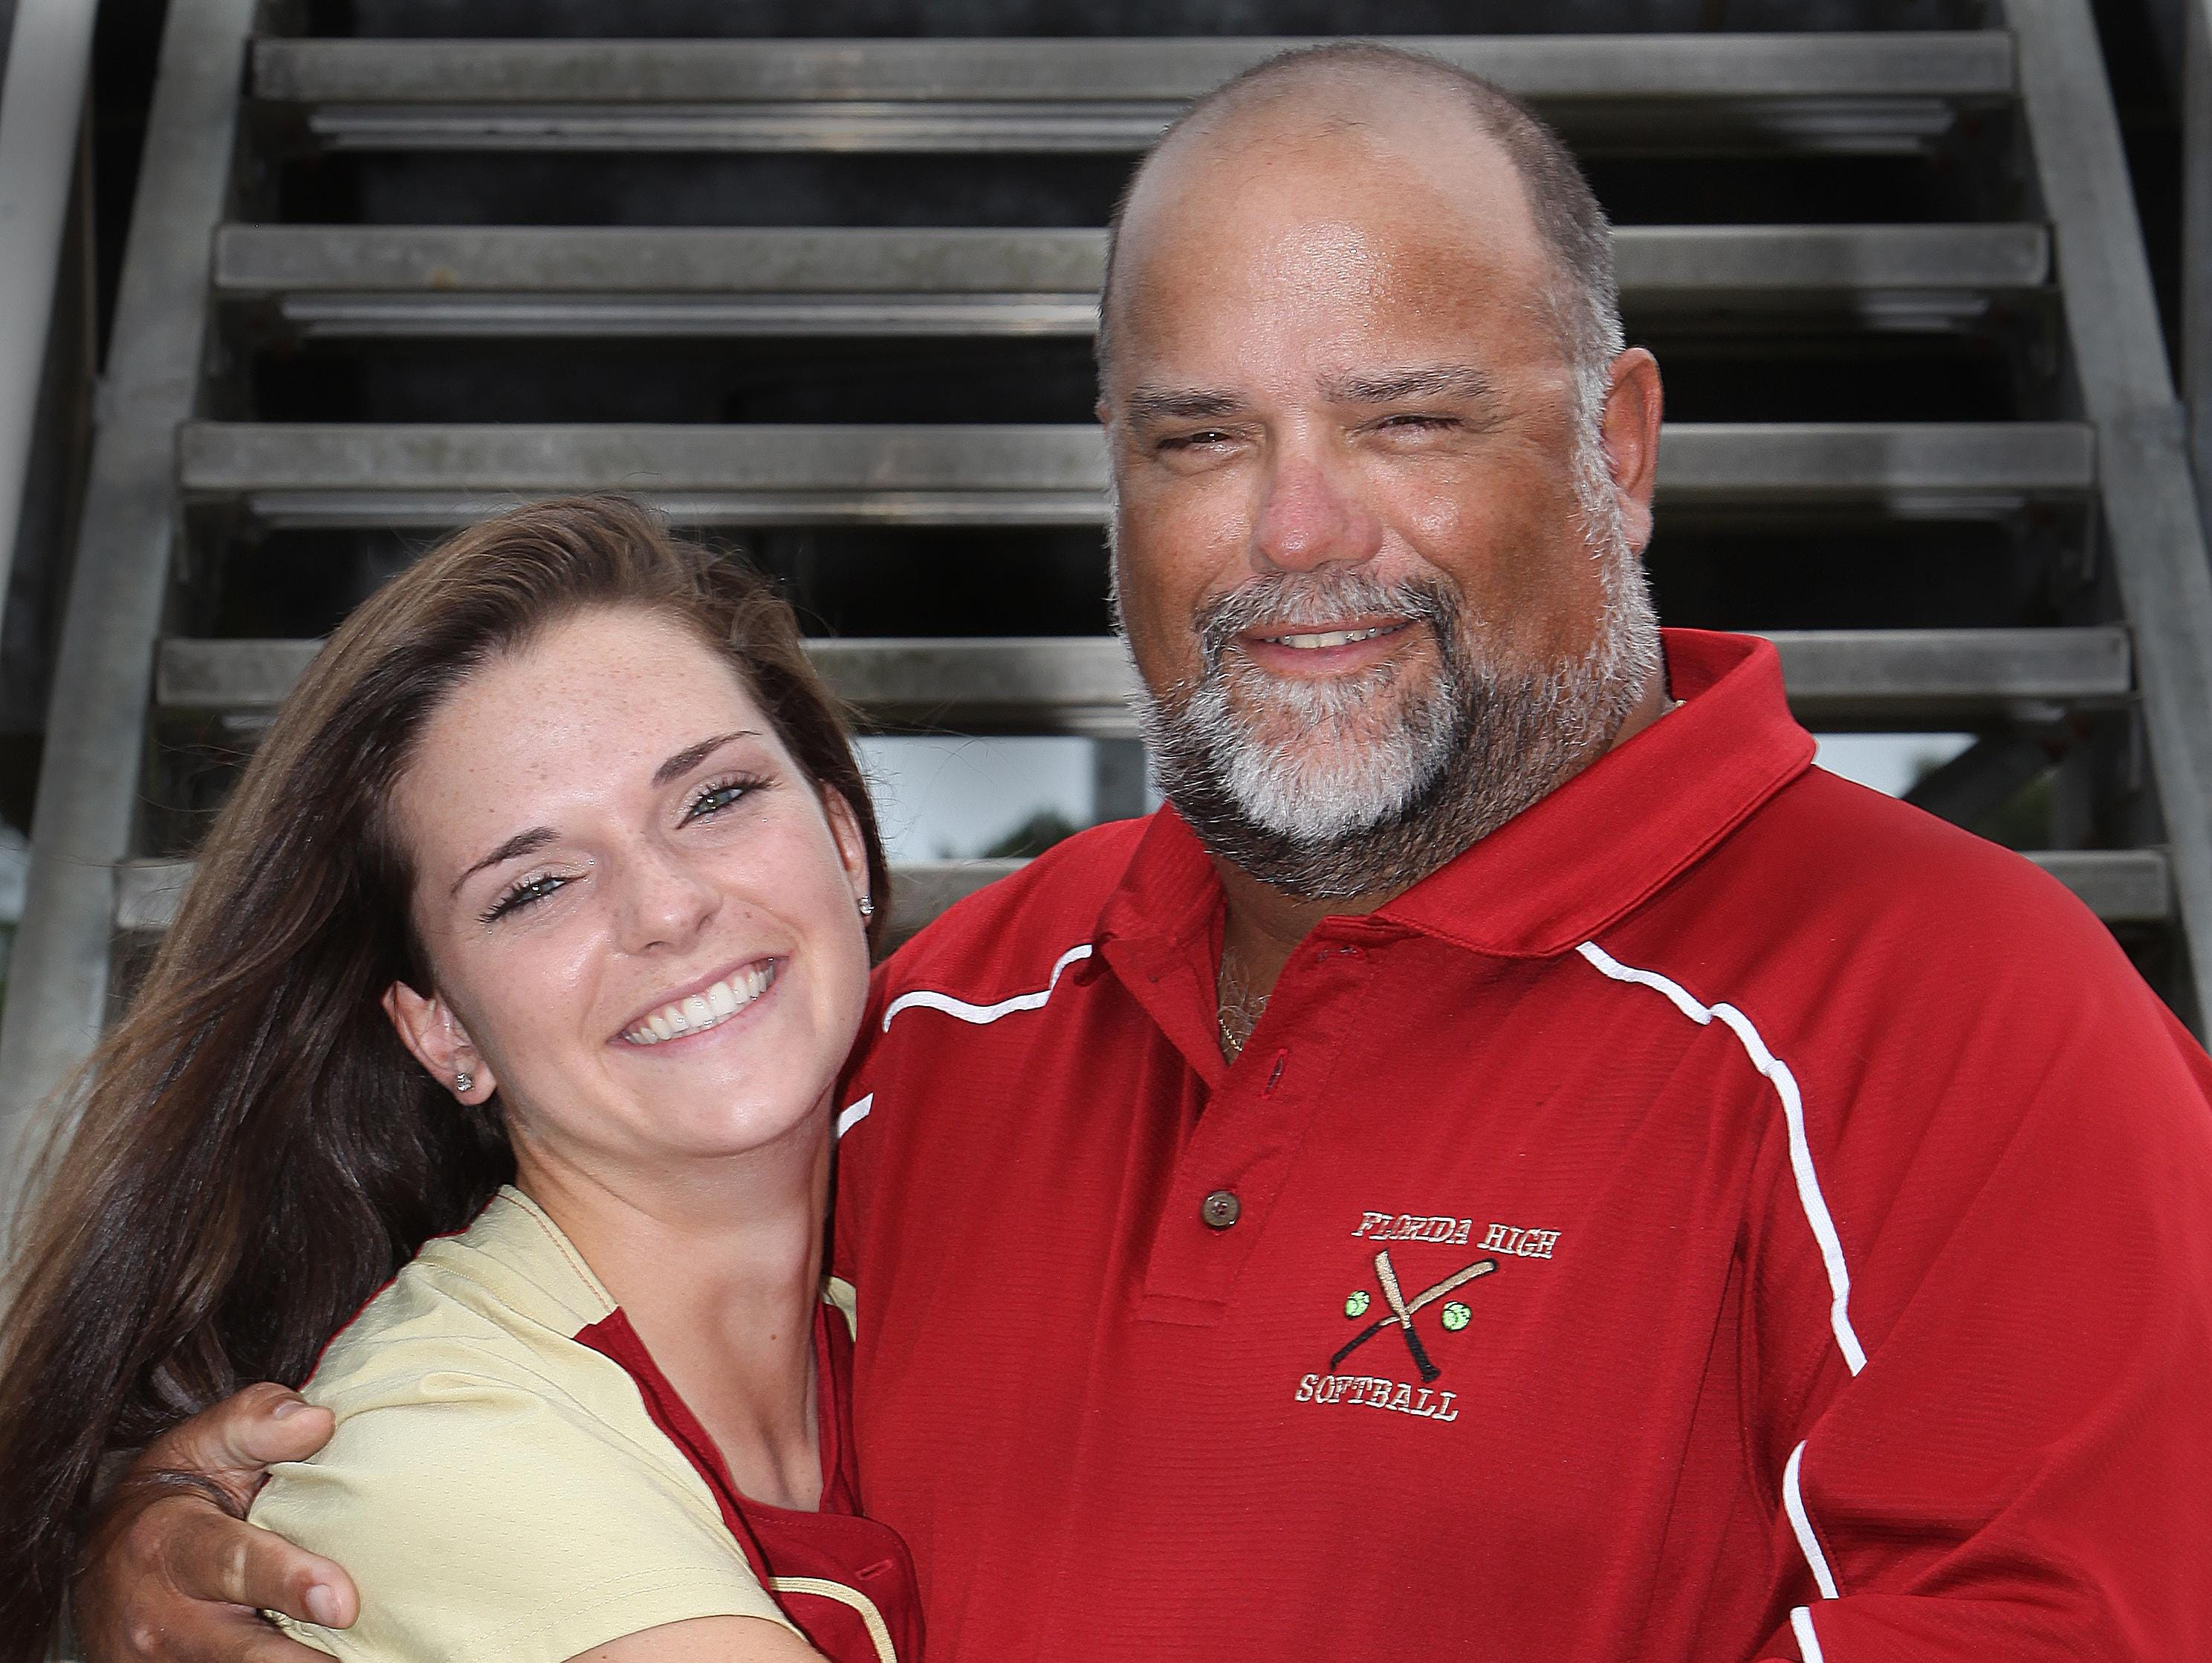 Florida High's Taylor Rossman and her father, Rick Rossman, were the 2011 All-Big Bend Player of the Year and Coach of the Year, respectively.